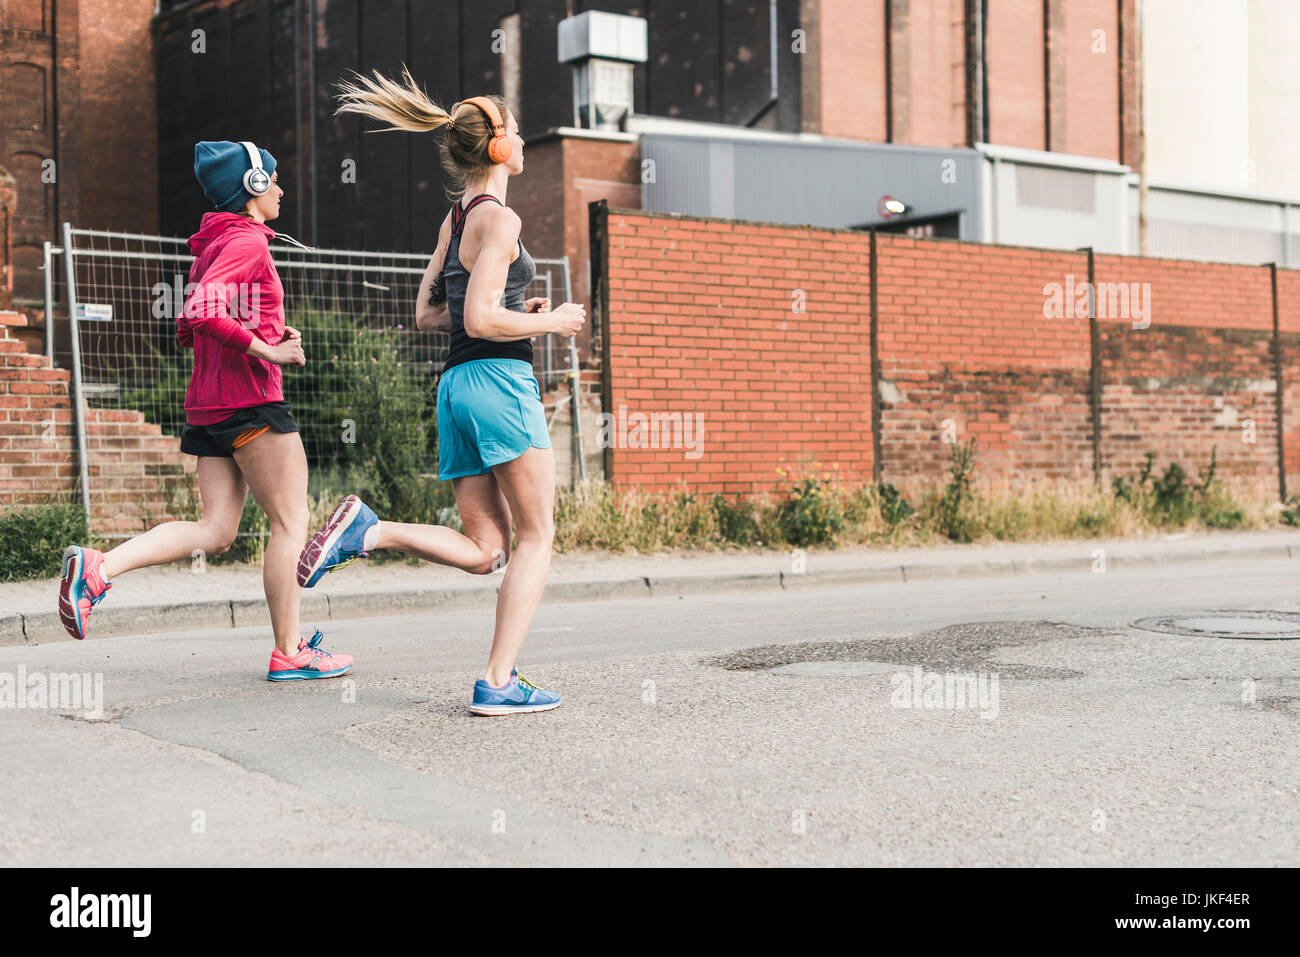 Two women running on the street along factory building - Stock Image